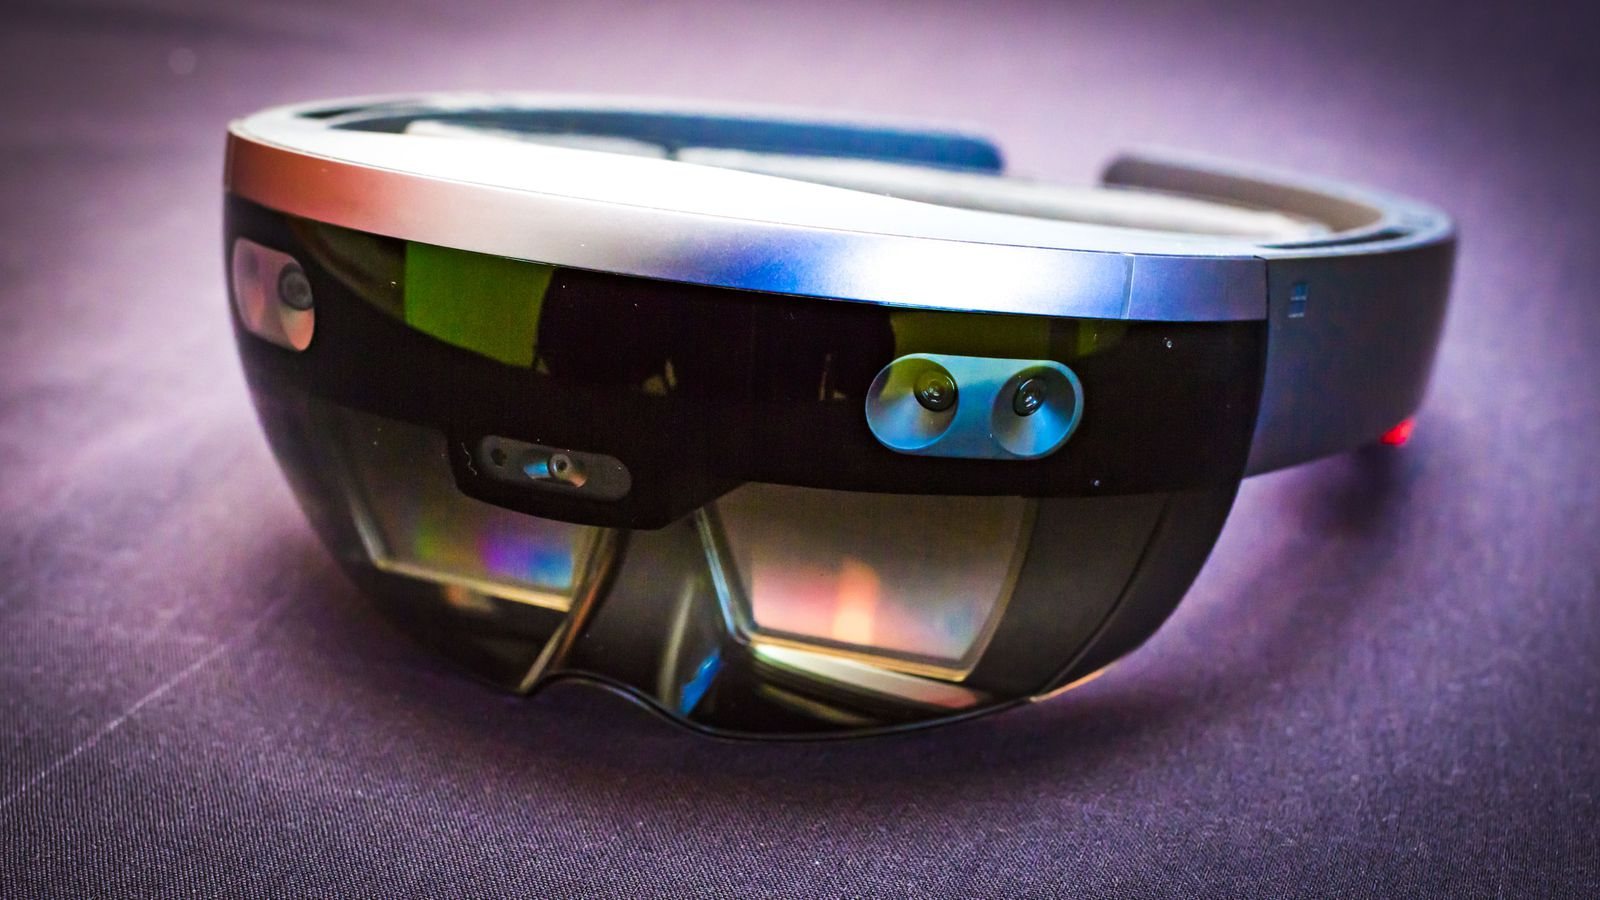 Microsoft may unveil the HoloLens 2 next month at MWC19